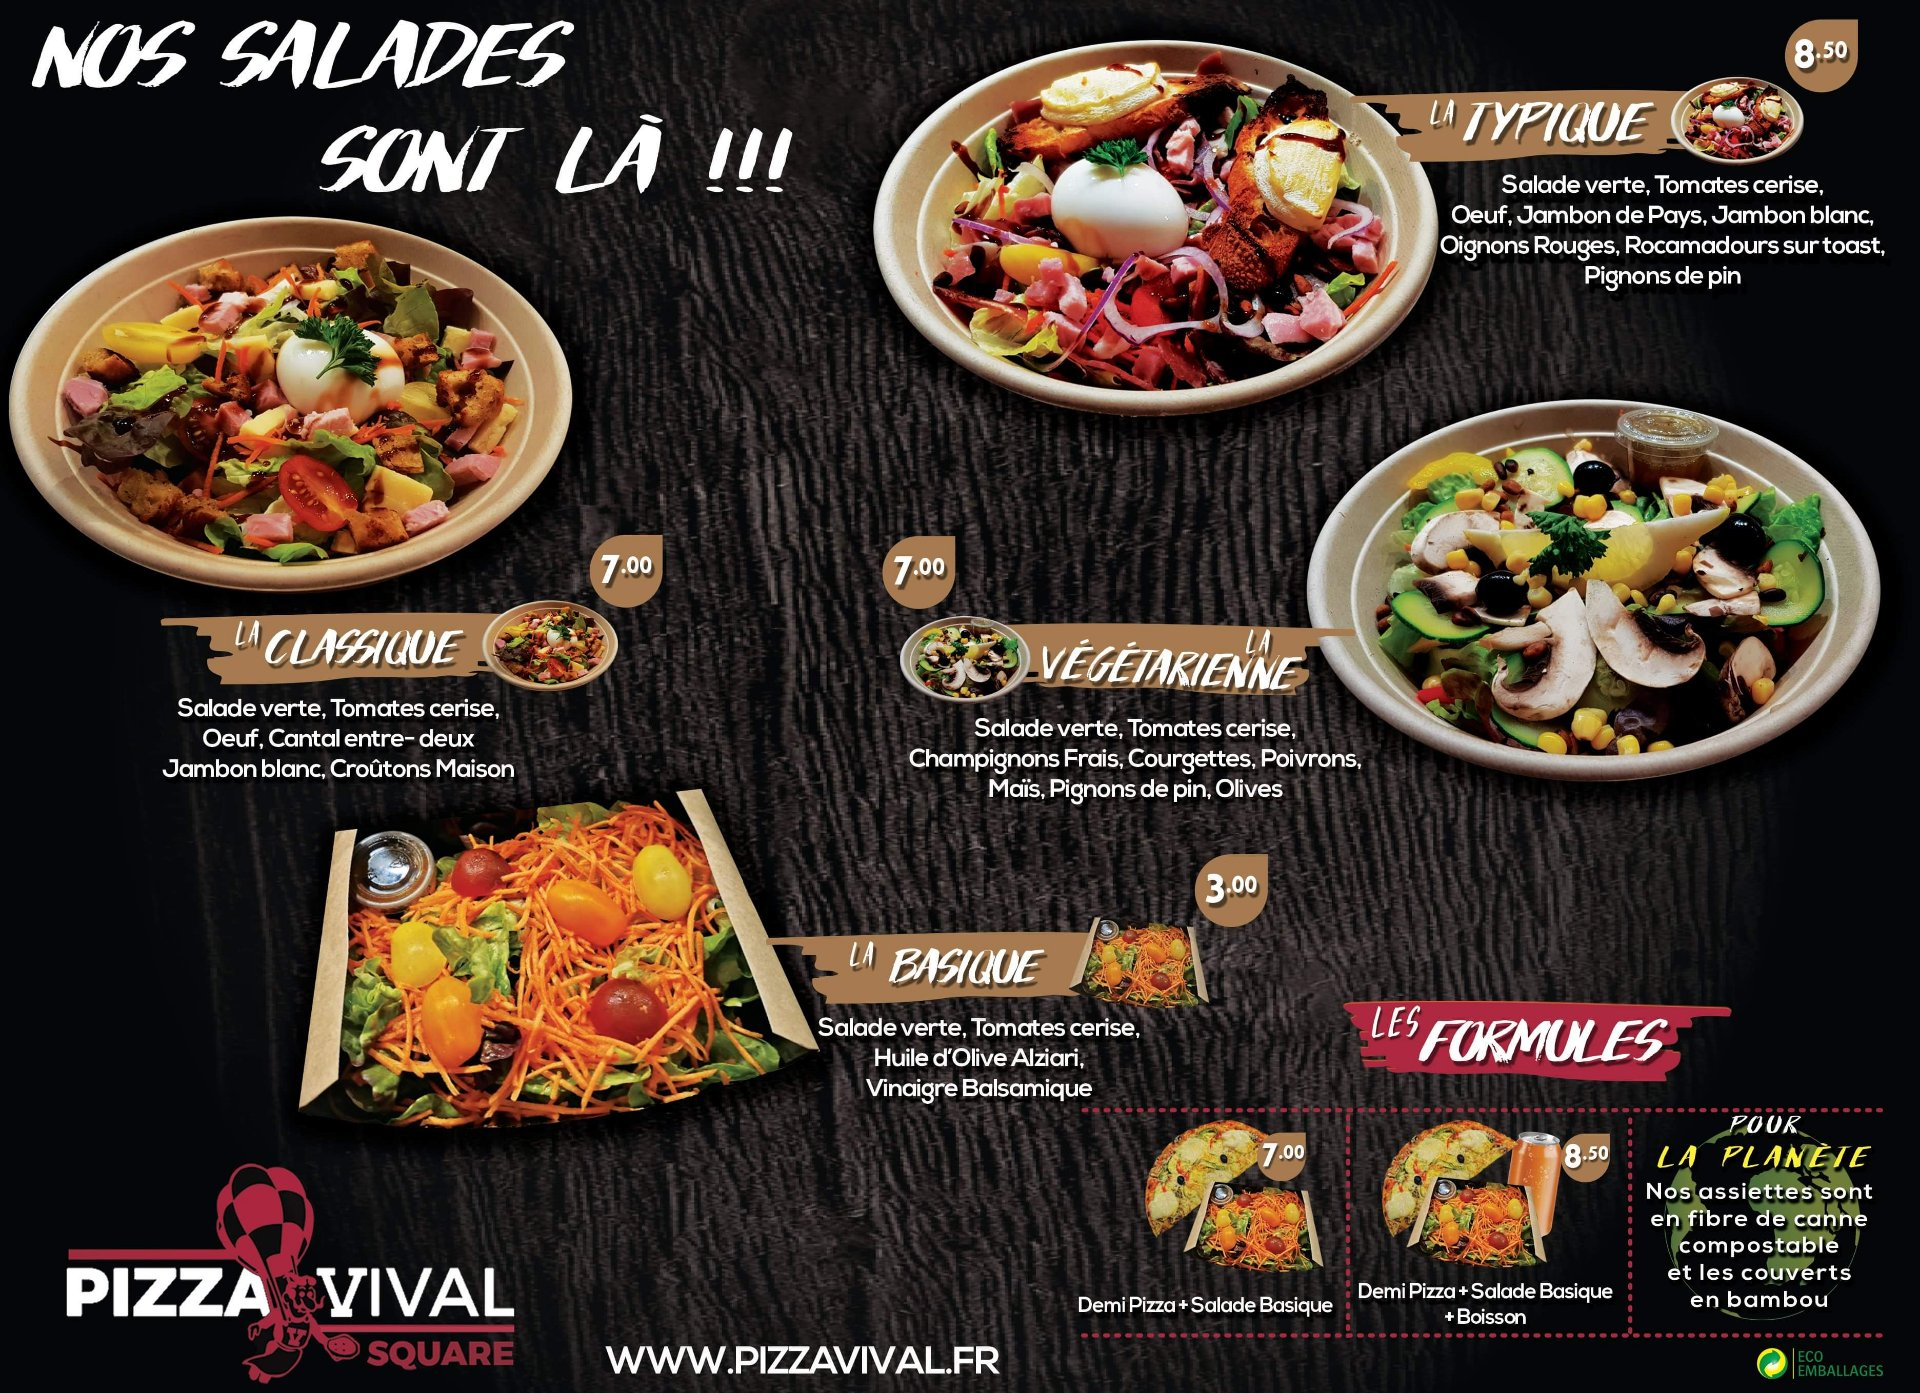 Pizza Vival Square